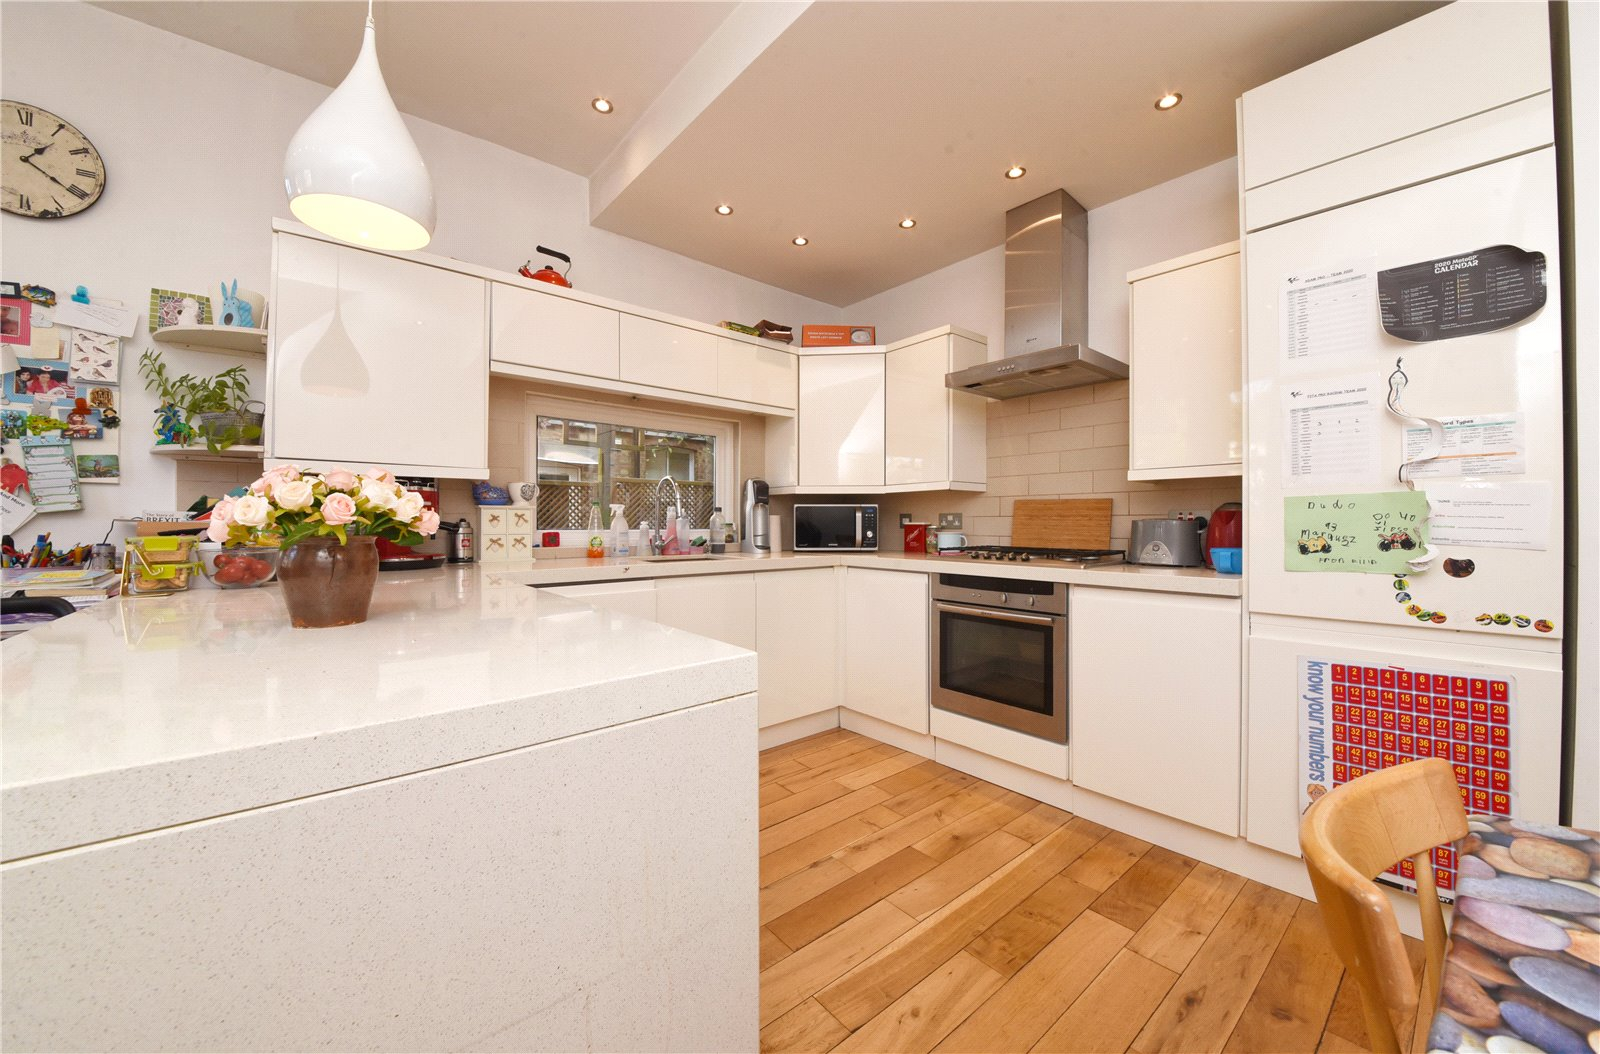 2 bed apartment for sale in East Finchley, N2 0SX  - Property Image 3